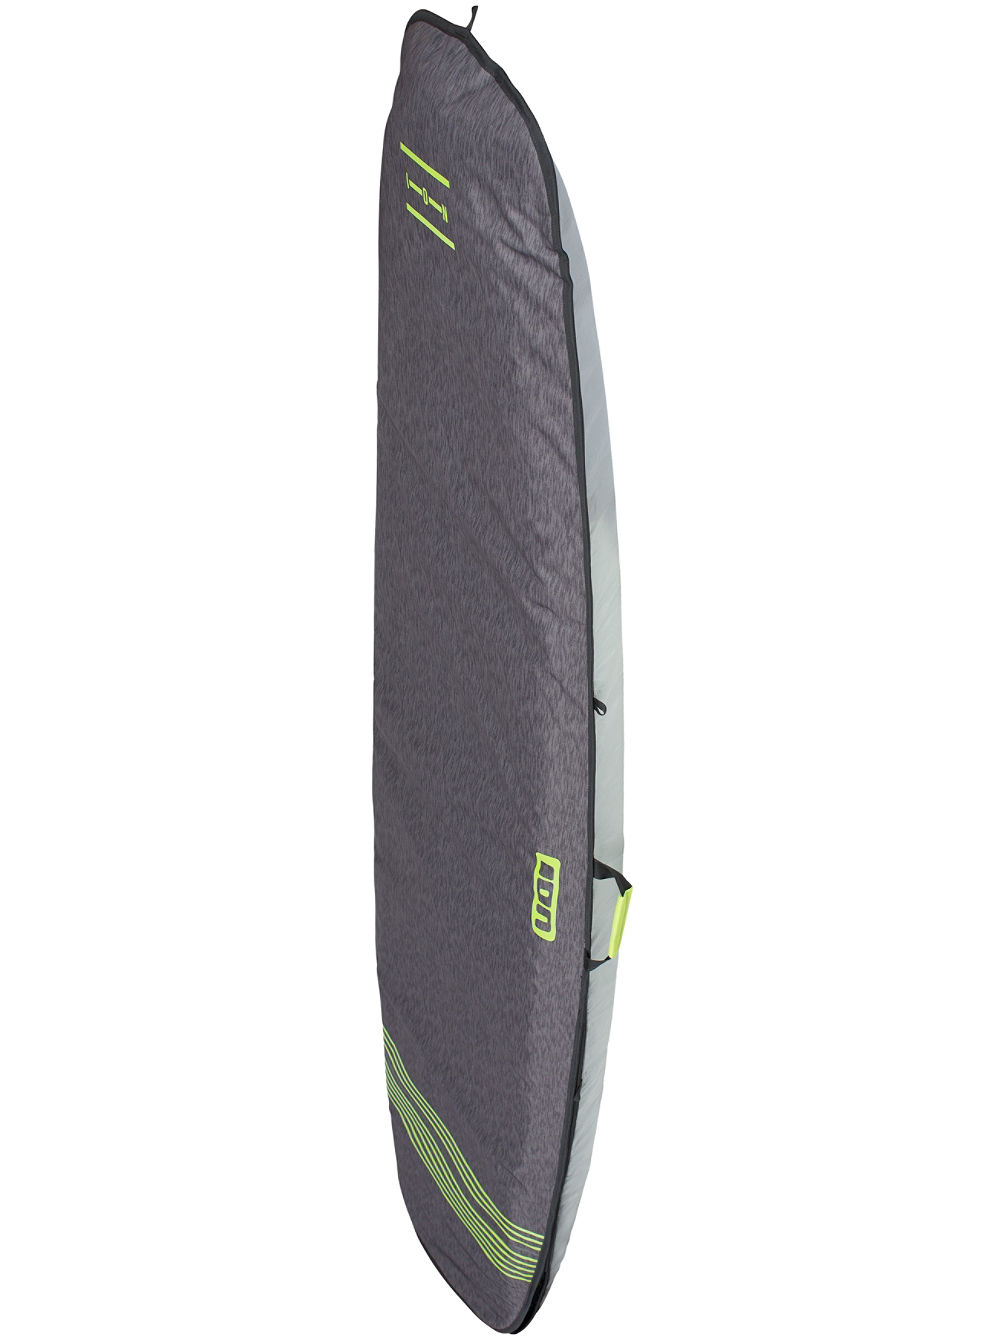 Sup Core 8.6x31.5 Stubby SUP Boardbag